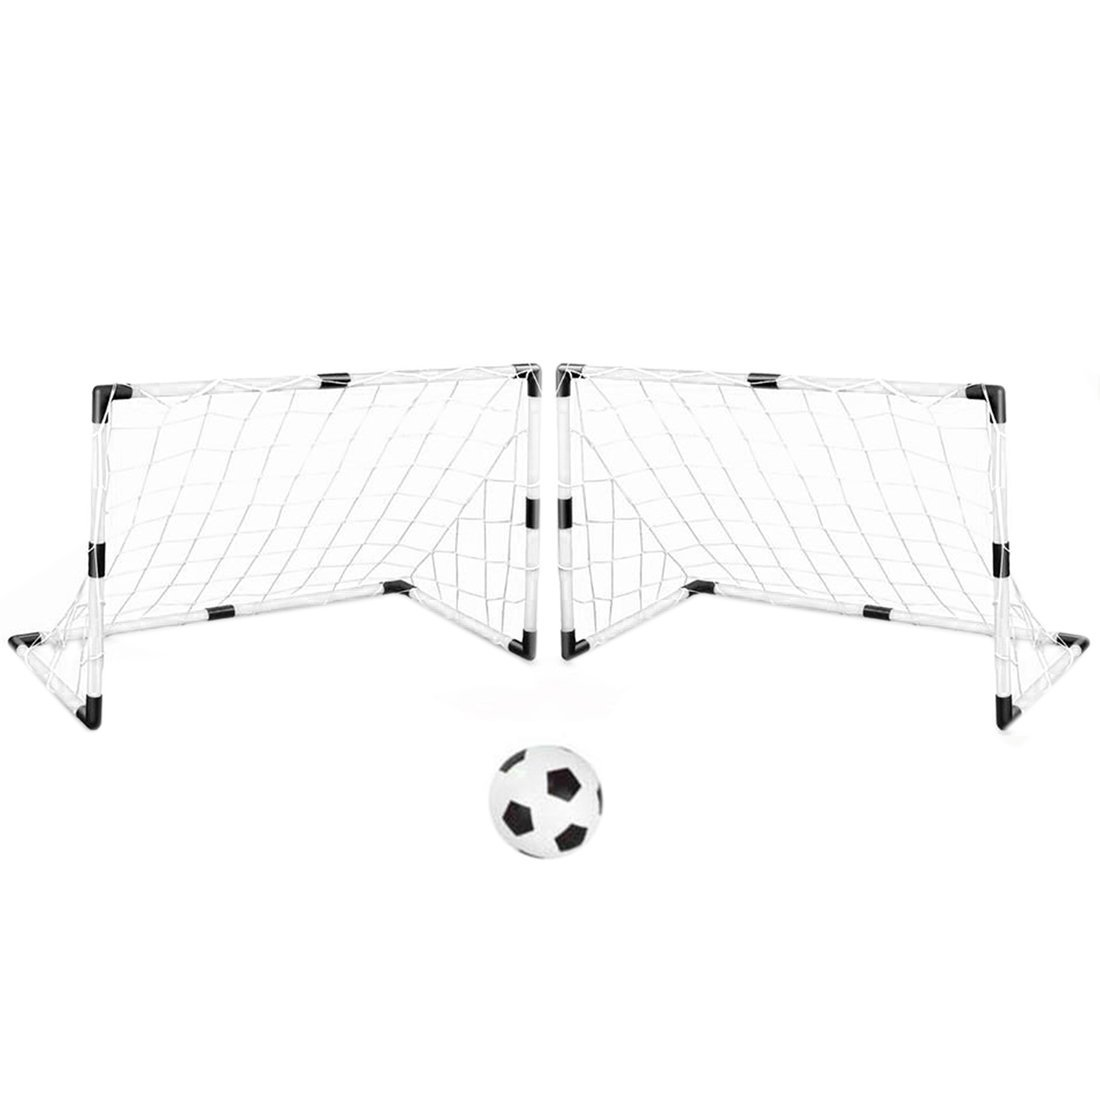 Soccer Goals, WOLFBUSH Set of 2 DIY Youth Sports Soccer Goals with Soccer Ball and Pump Practice Scrimmage Game - White